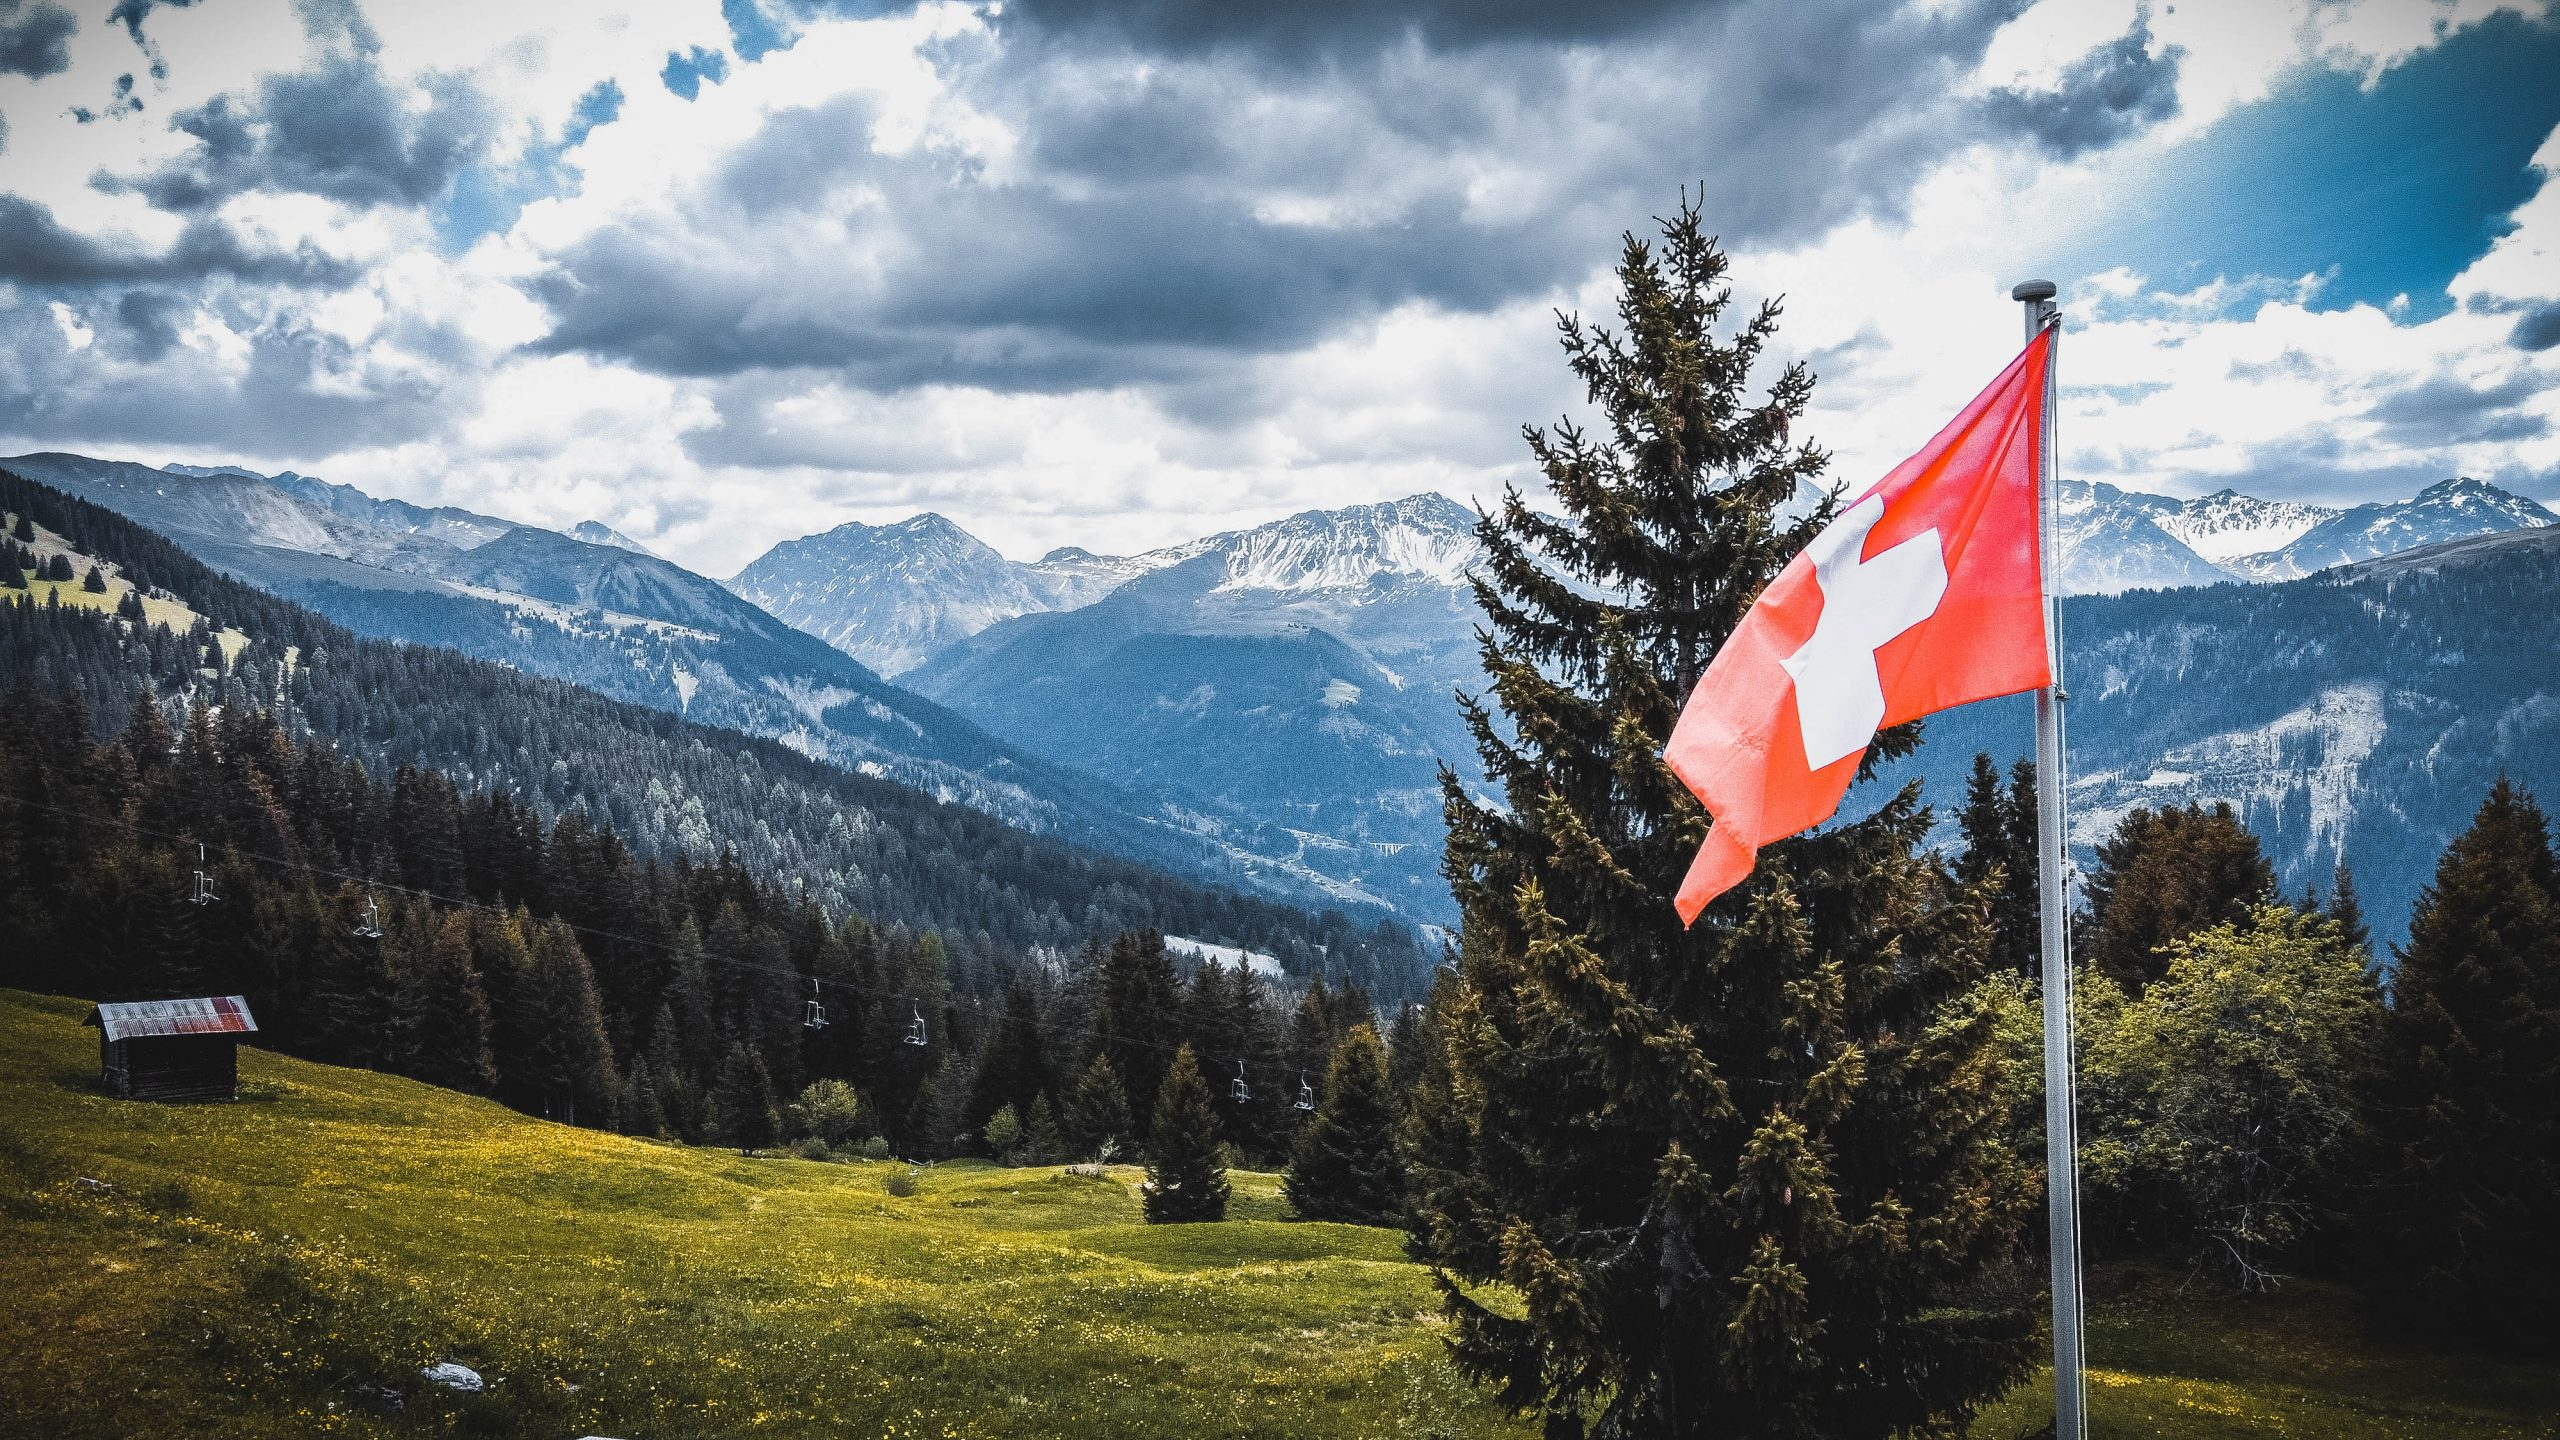 The Swiss Flag: Meaning and History